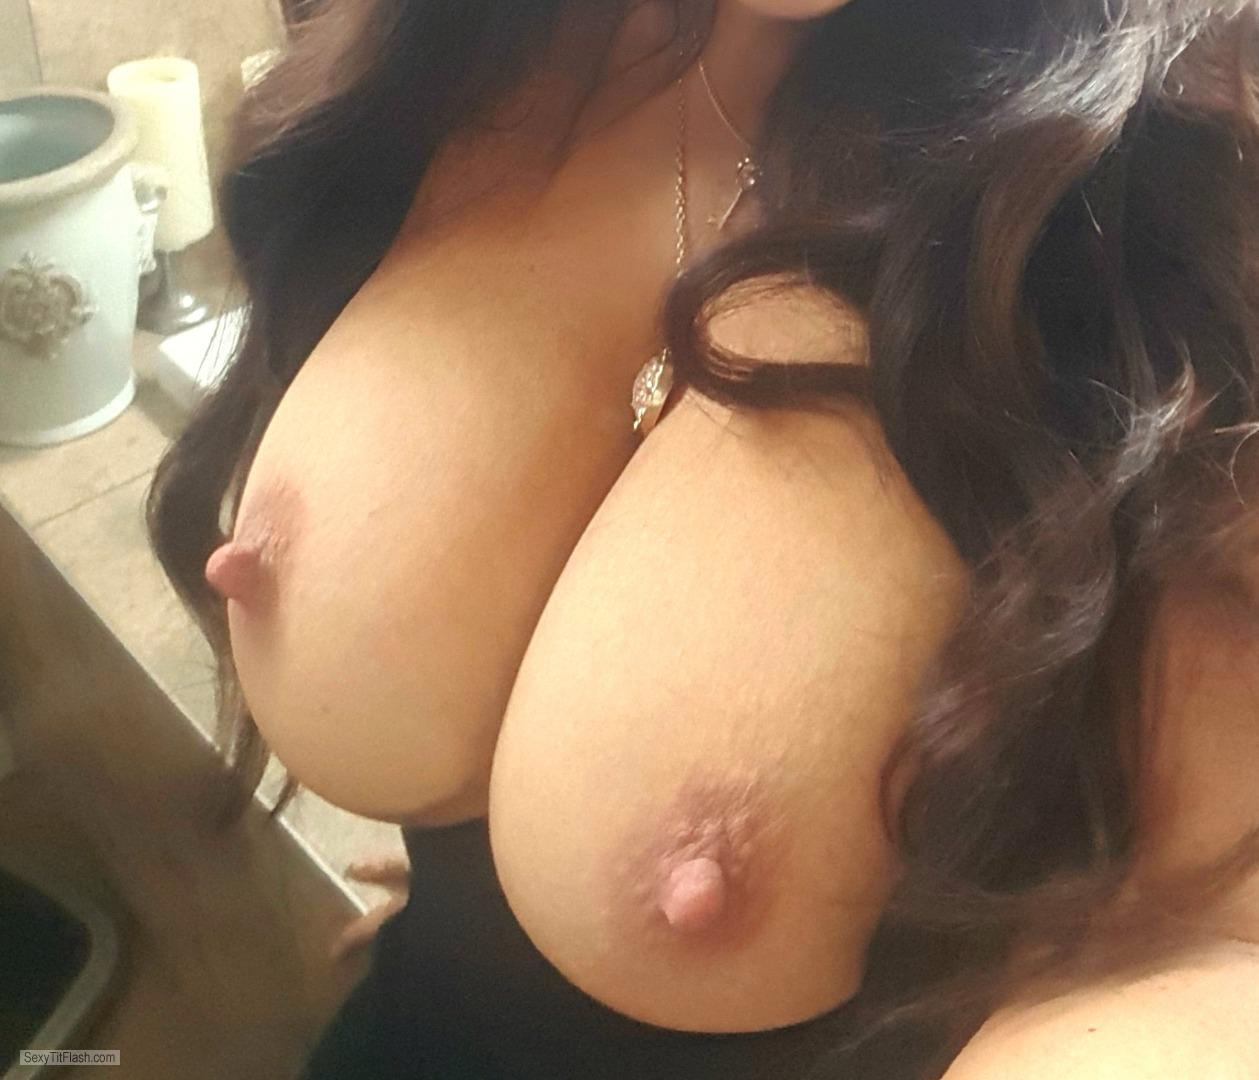 my medium tits (selfie) - kayla from united states tit flash id 237671